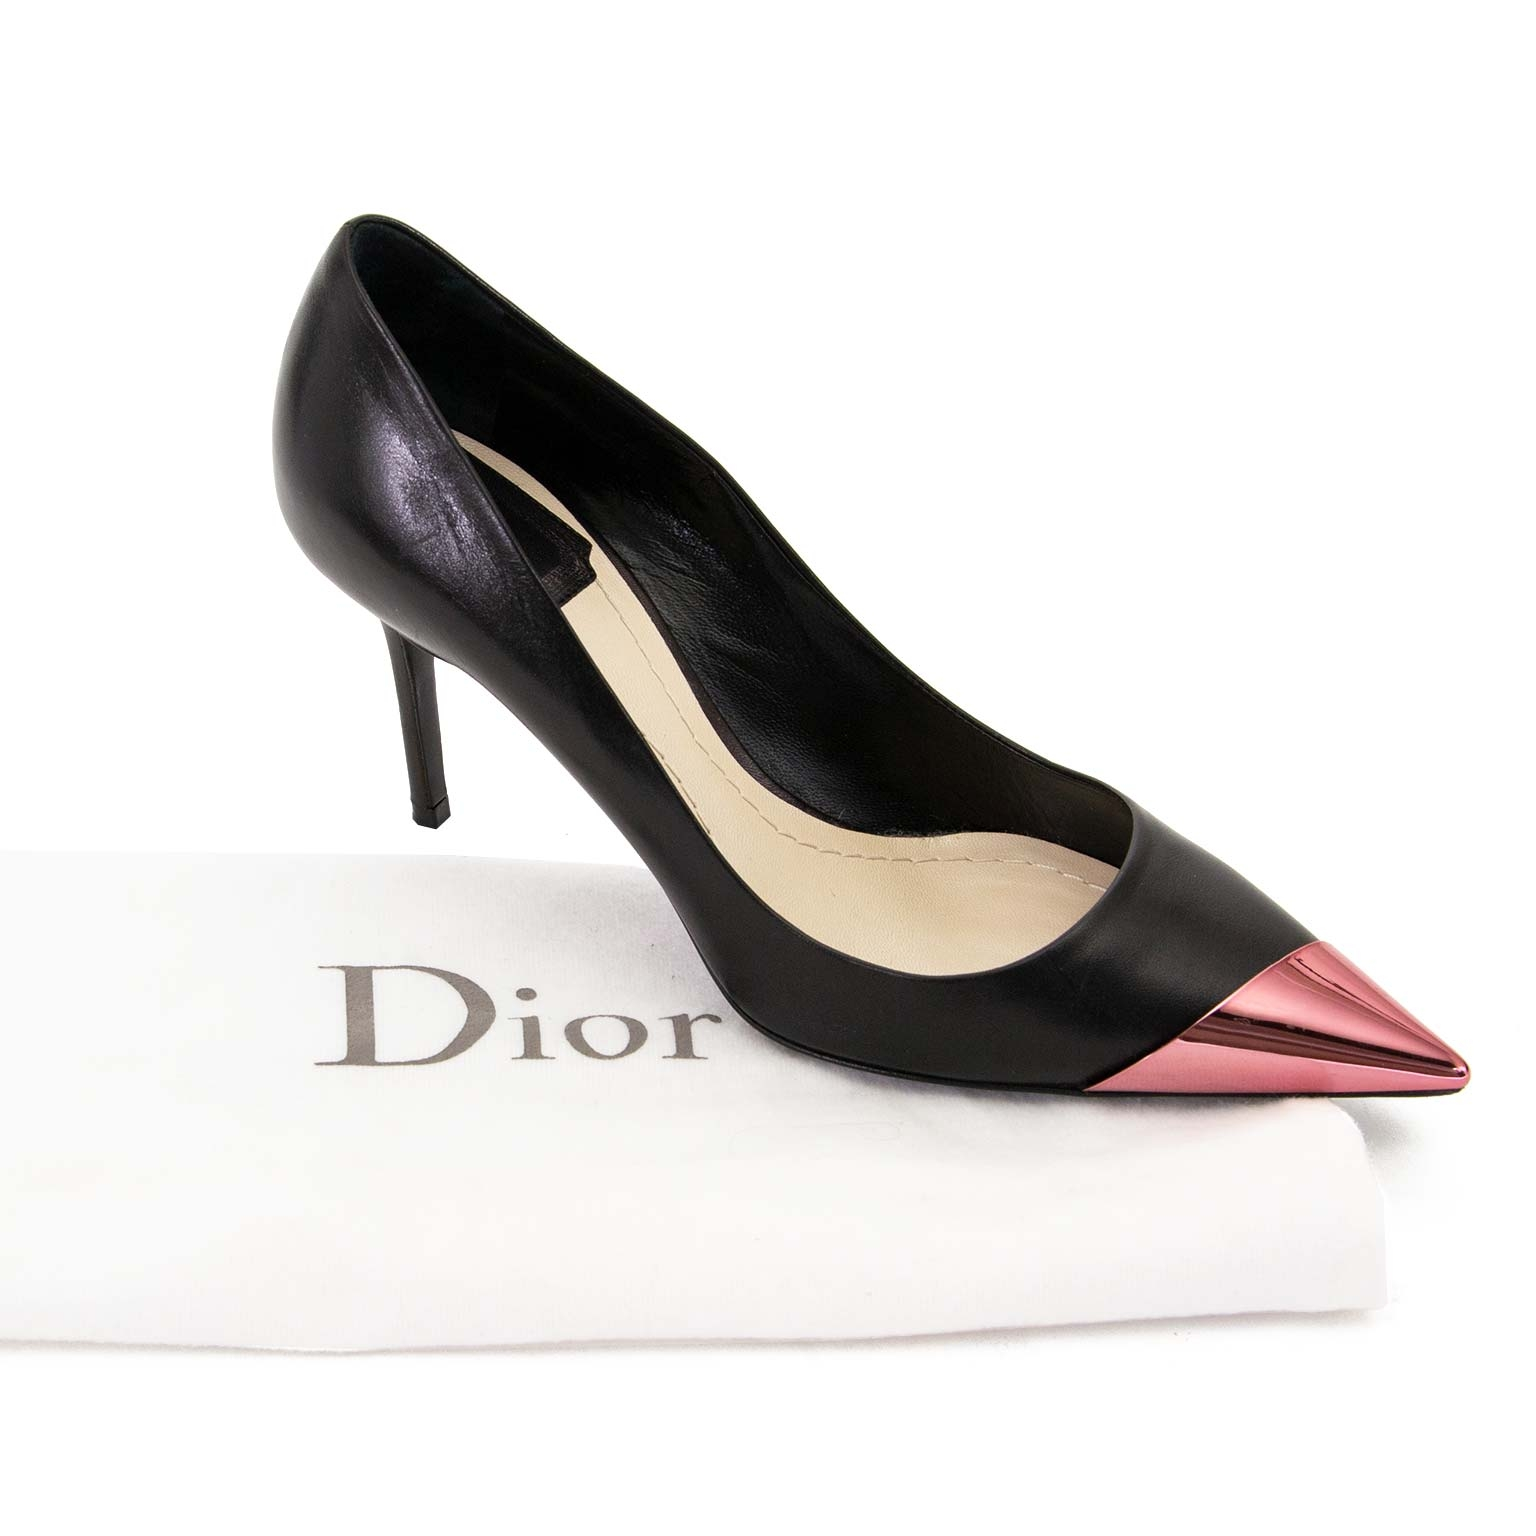 christian dior black pointed metallic cap toe pumps now for sale at labellov vintage fashion webshop belgium